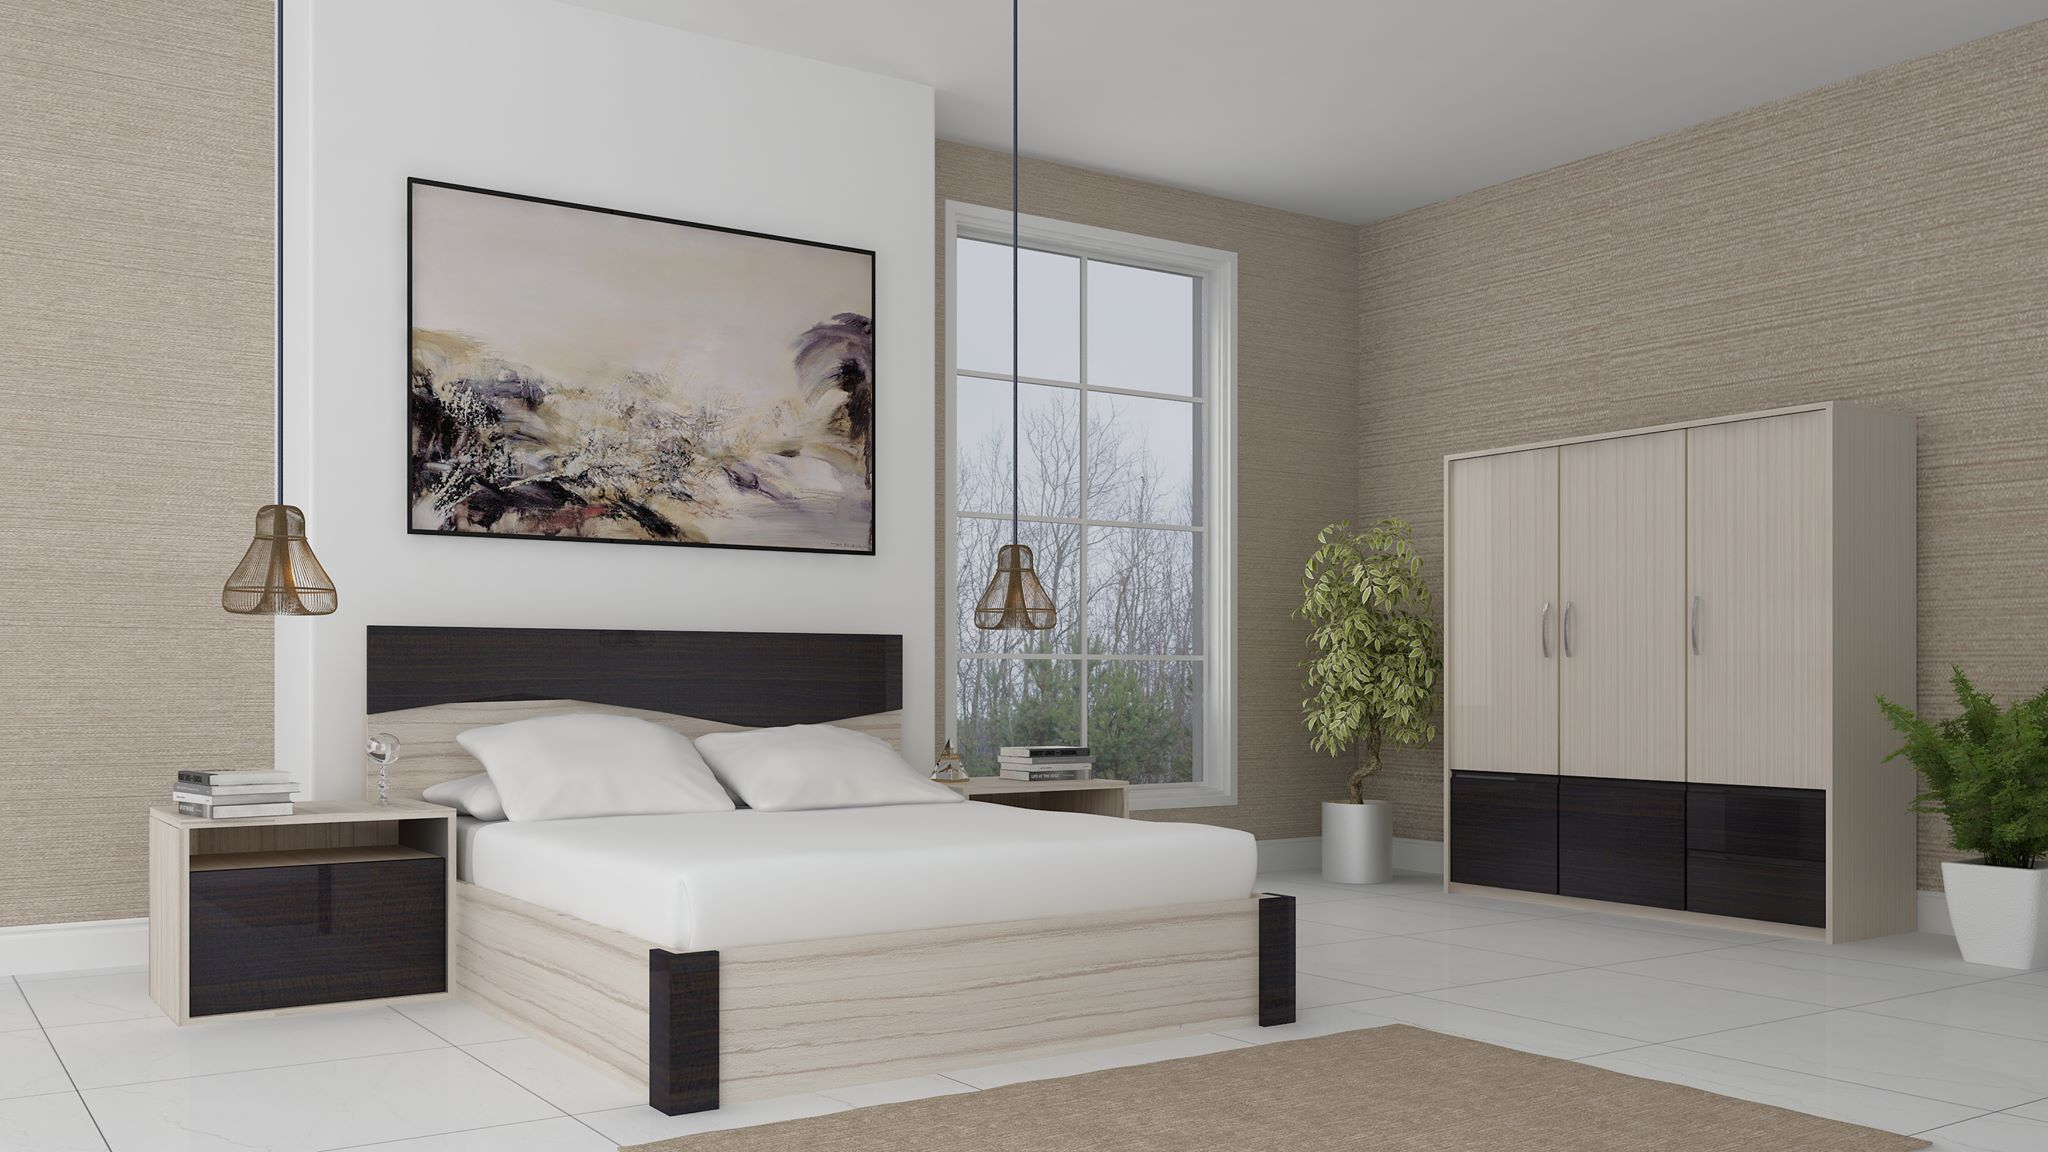 Bedroom 3D Interior Rendering Brooklyn NY 3D Interior Rendering Services by JMSDCONSULTANT